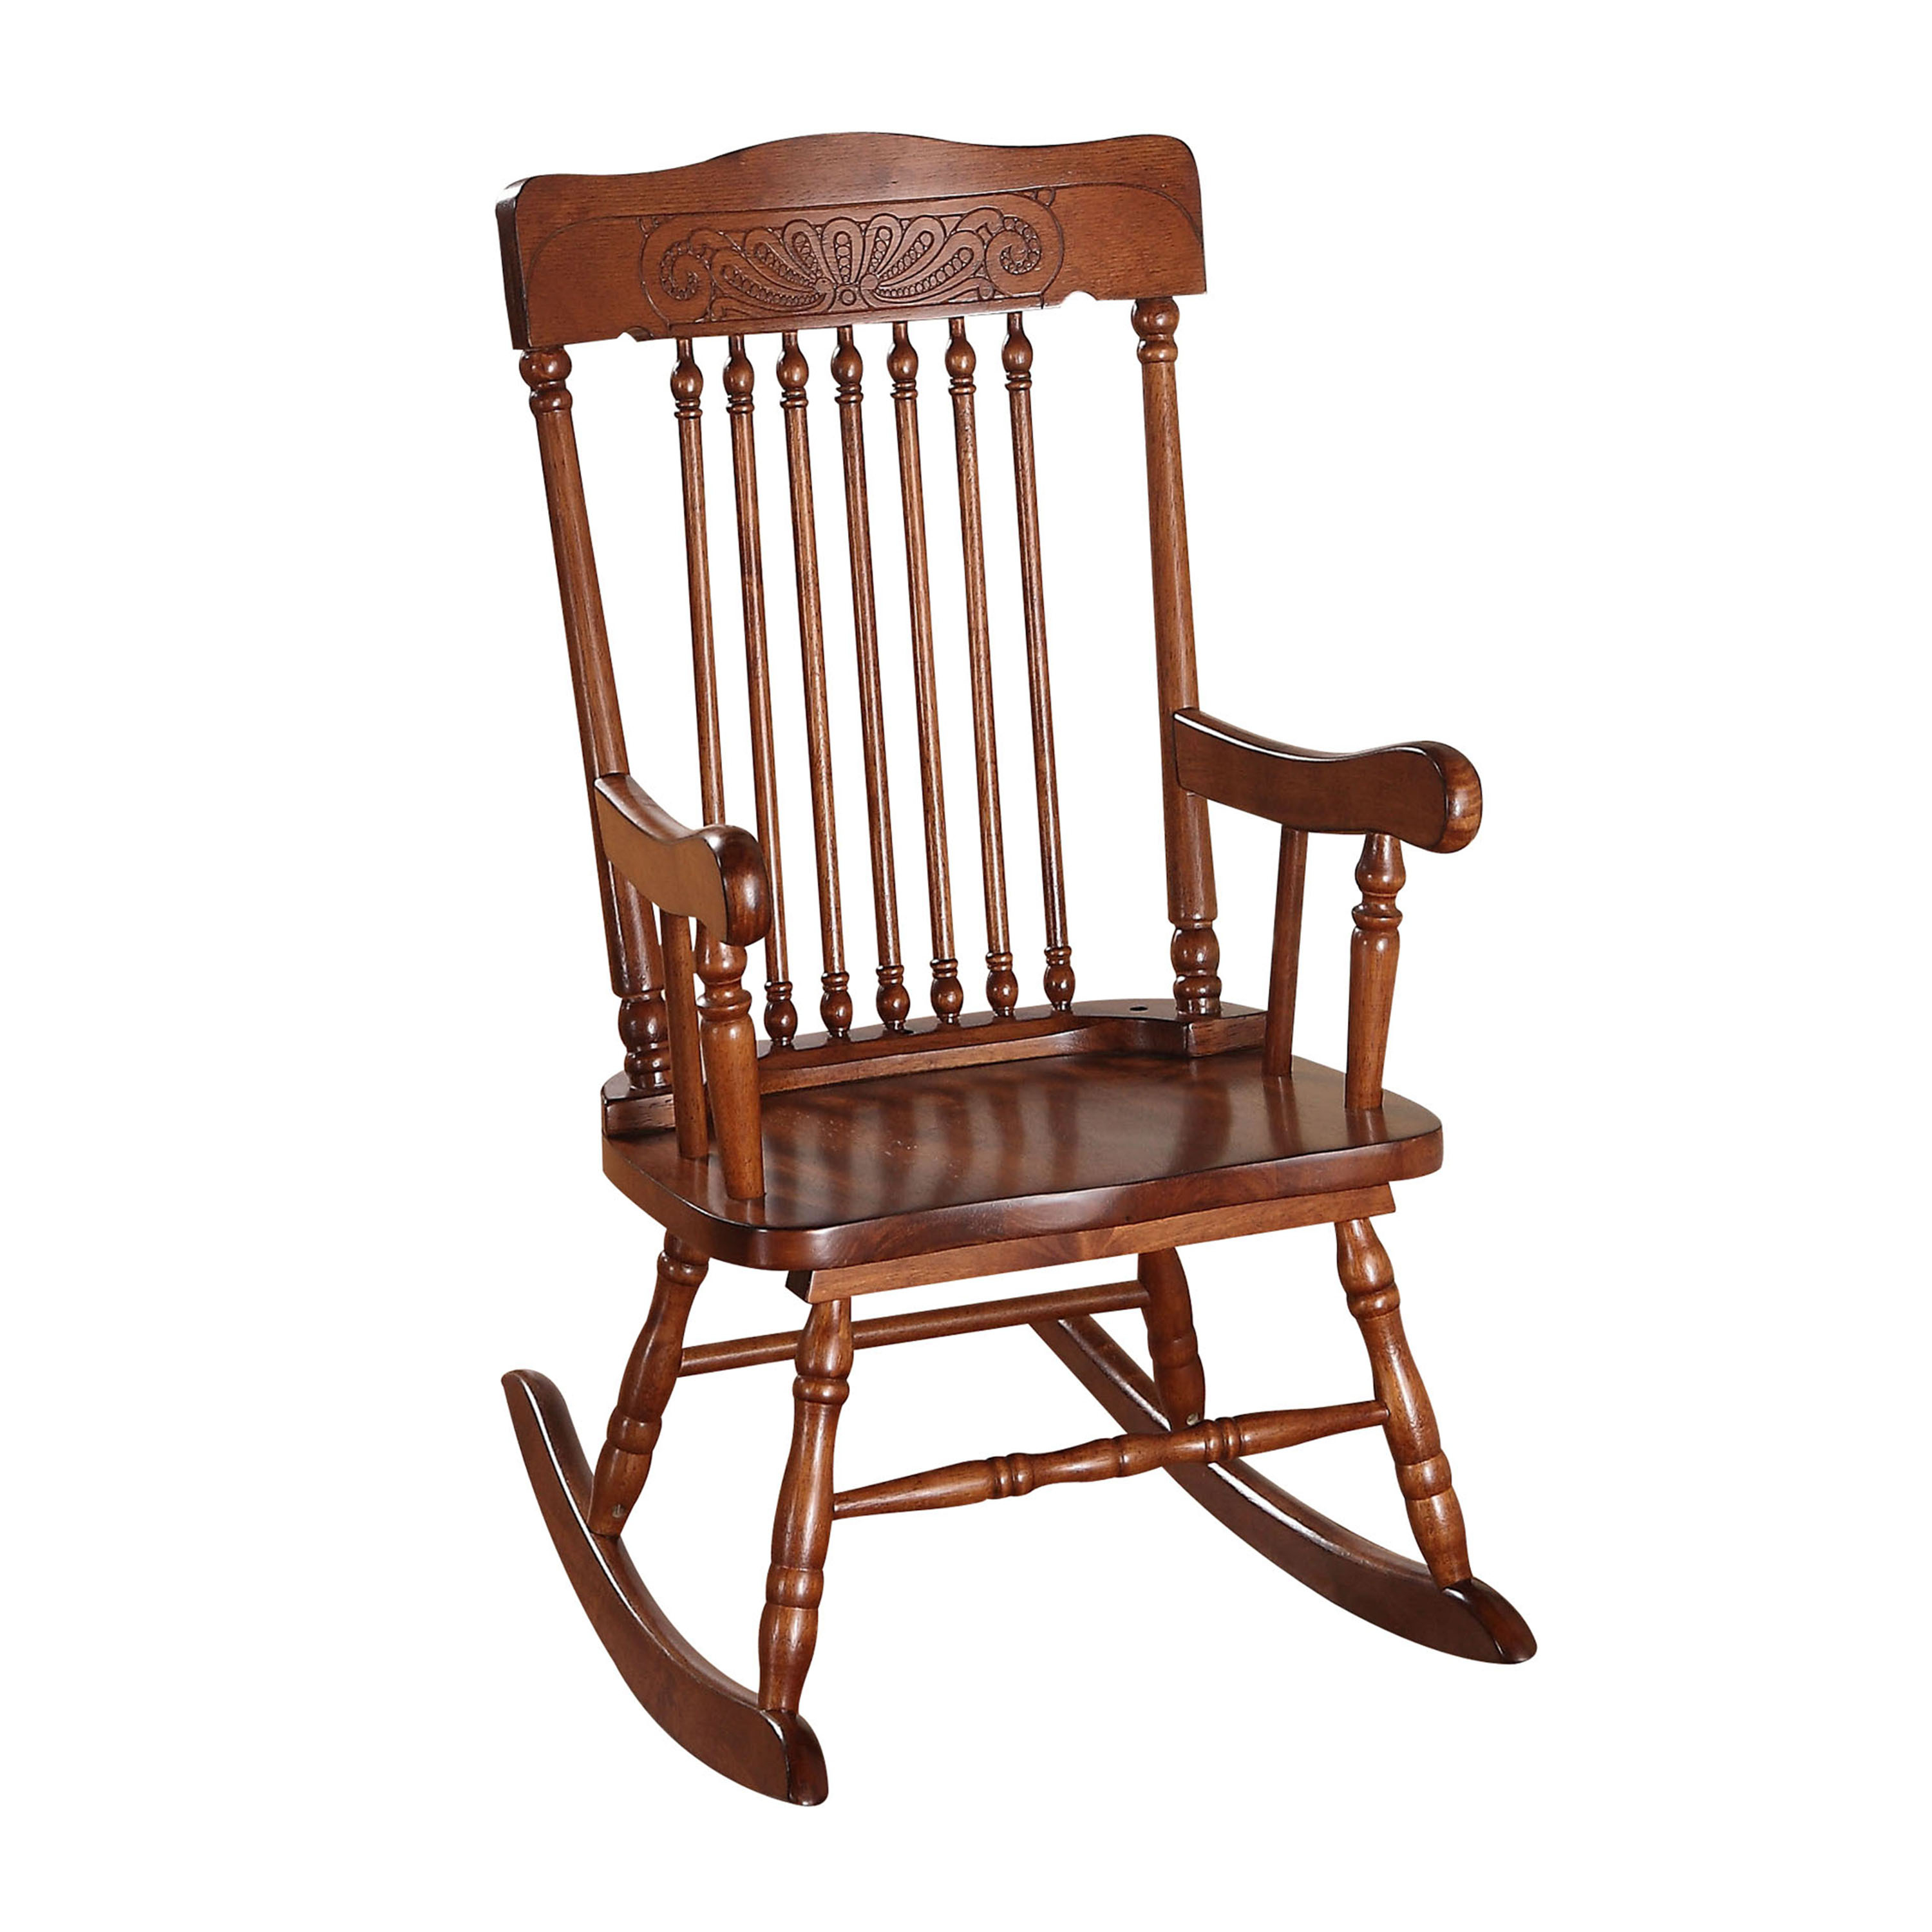 Inspiration about Details About Acme Aaro Youth Rocking Chair, Tobacco Intended For Brown Wood Youth Rocking Chairs (#1 of 20)